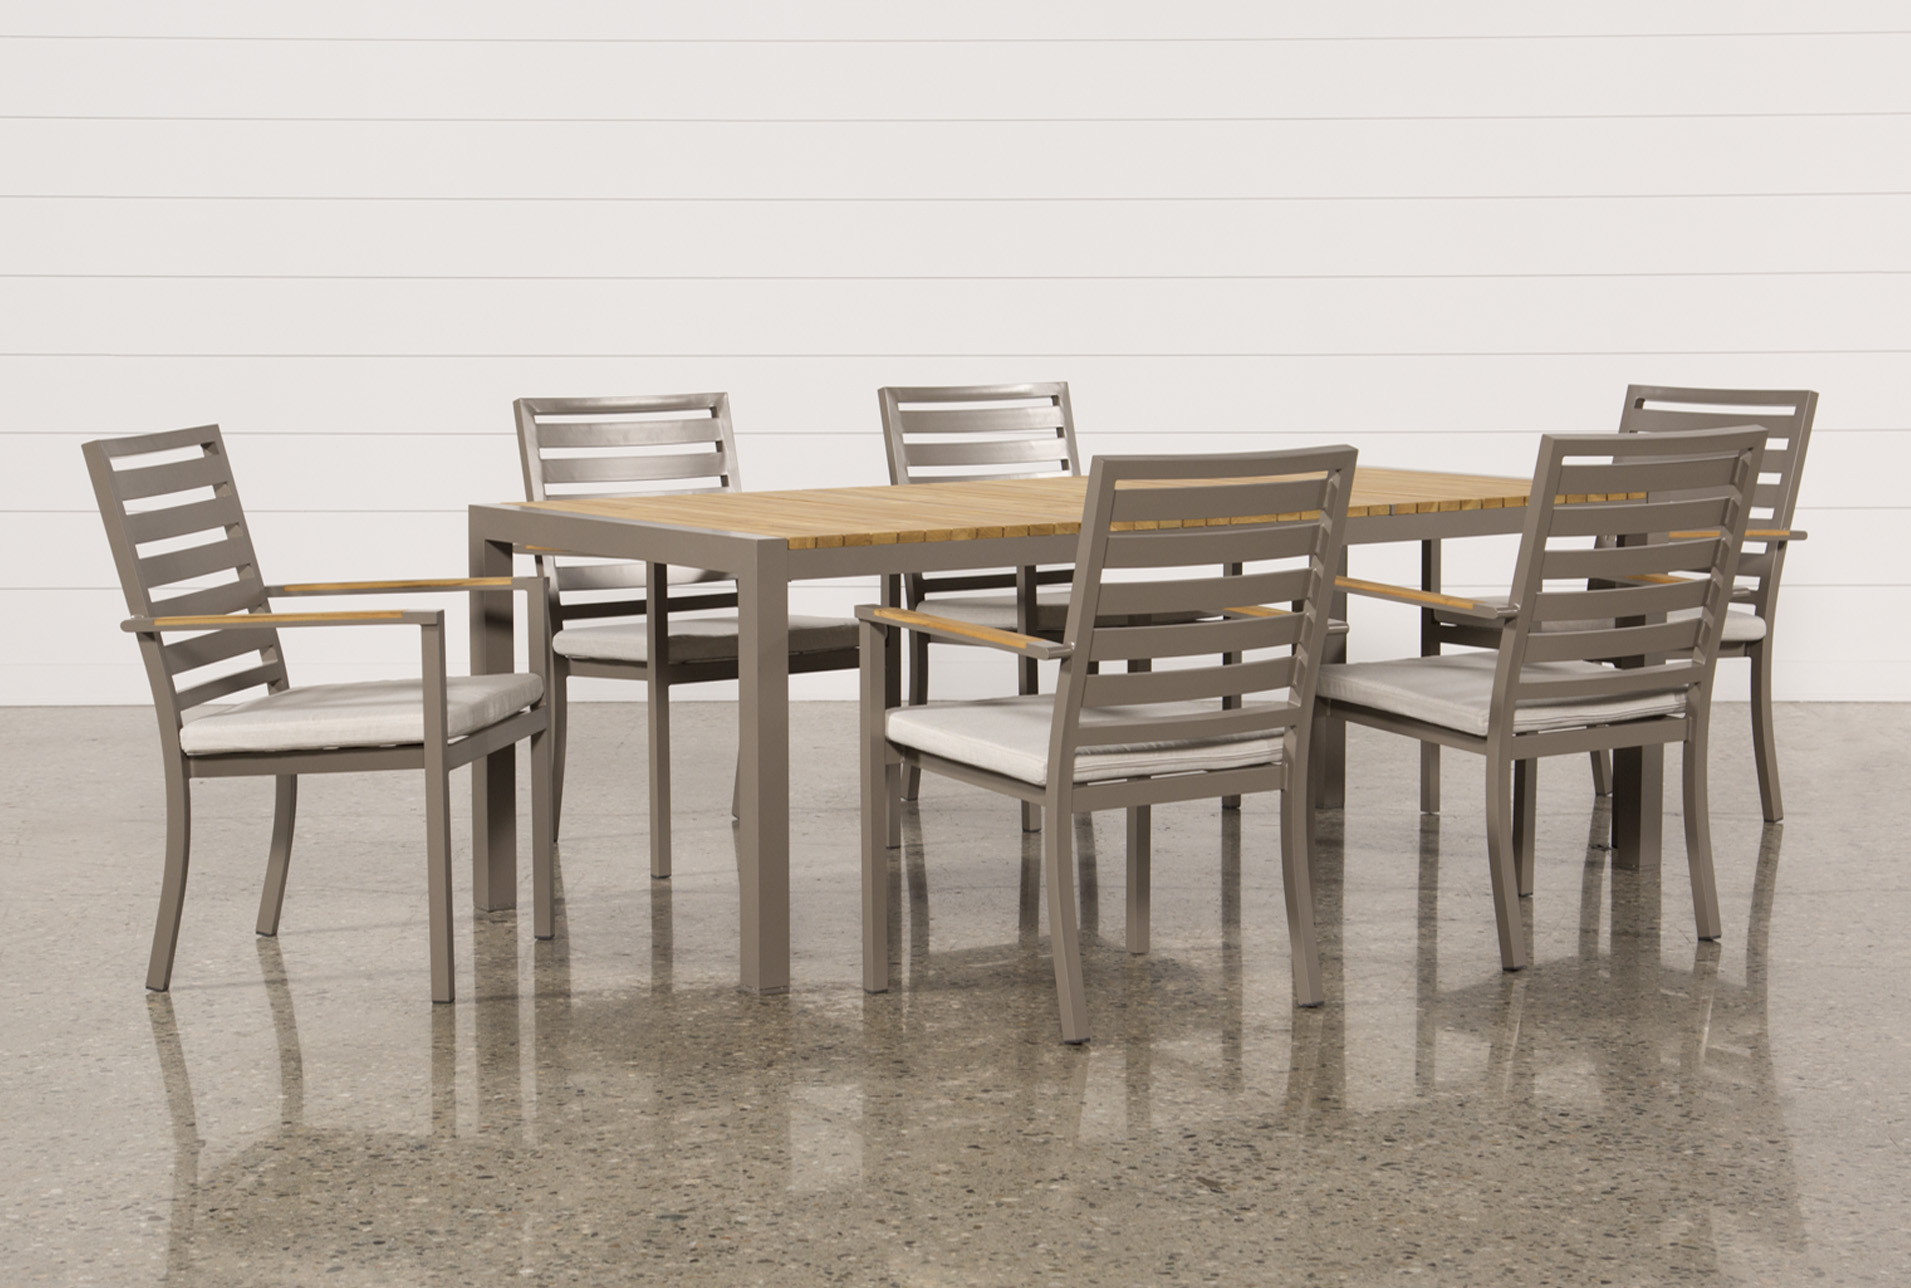 Outdoor Brasilia Teak Dining Table With 6 Chairs   360